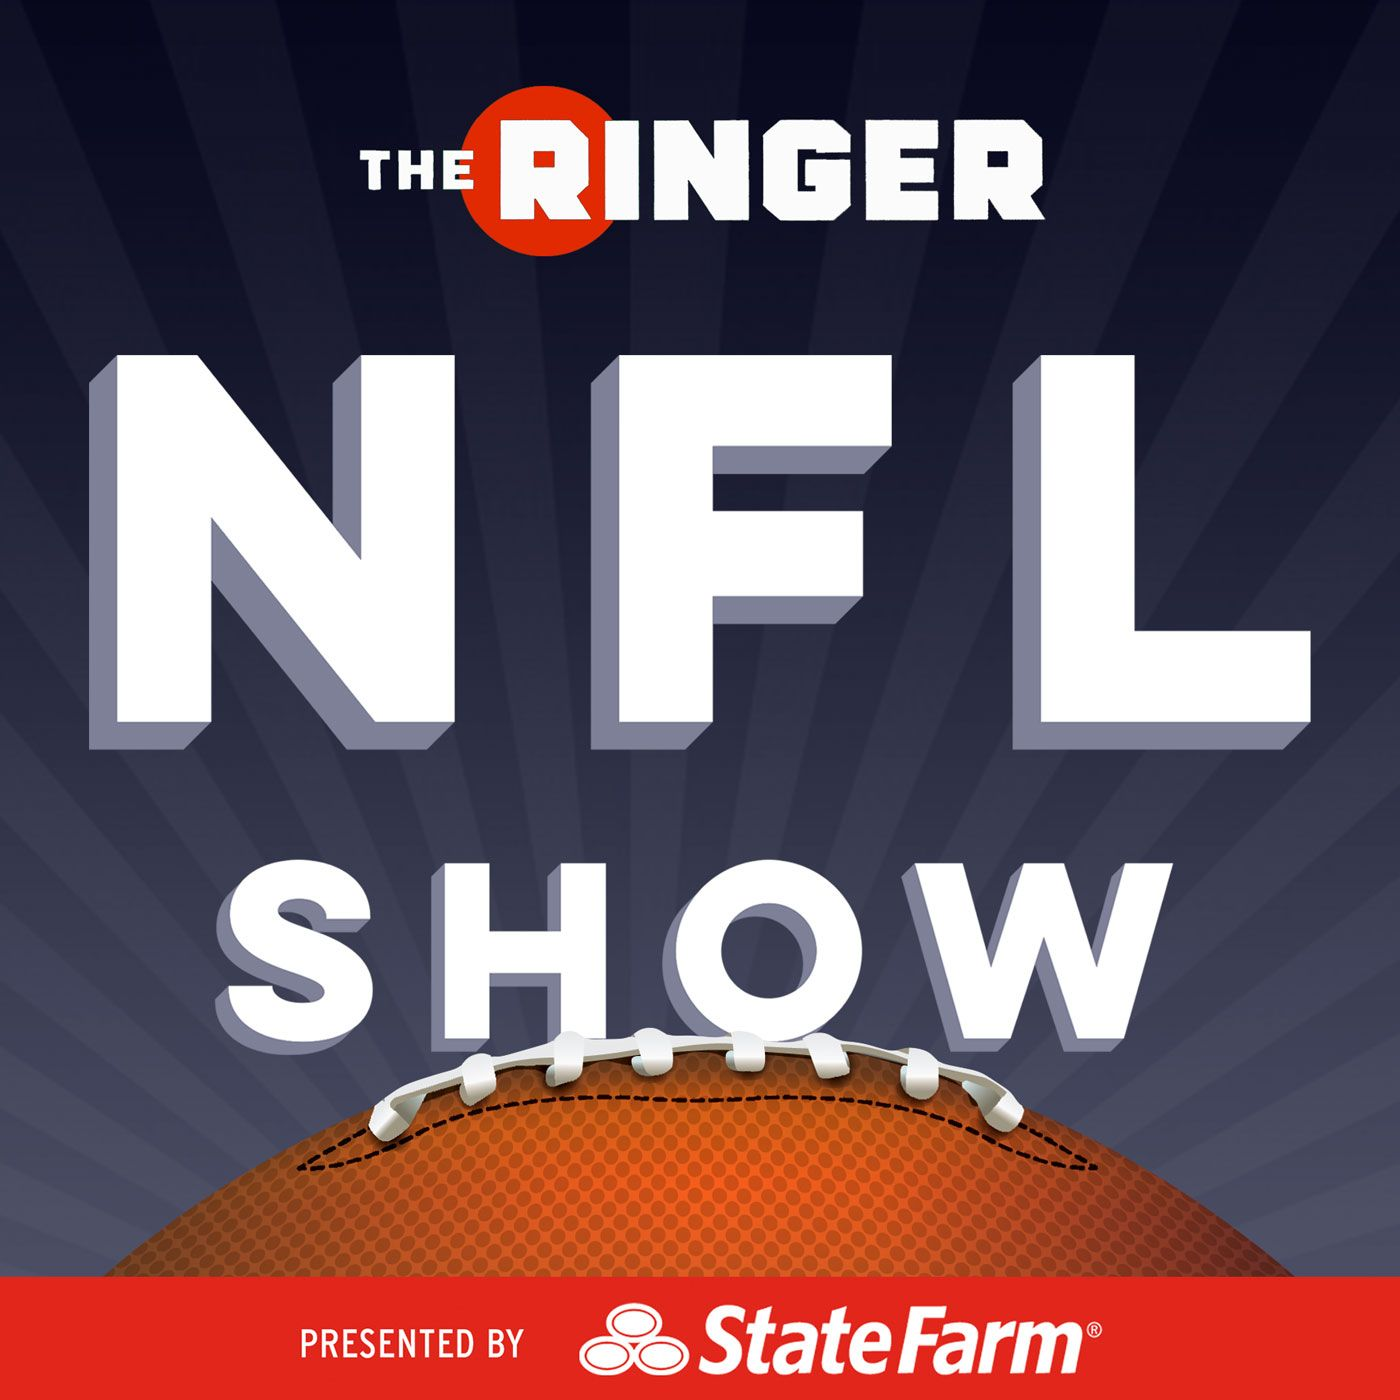 Can the Steelers Go 16-0? Plus: Brees vs. Brady, and What Antonio Brown Brings to the Bucs. | The Ringer NFL Show